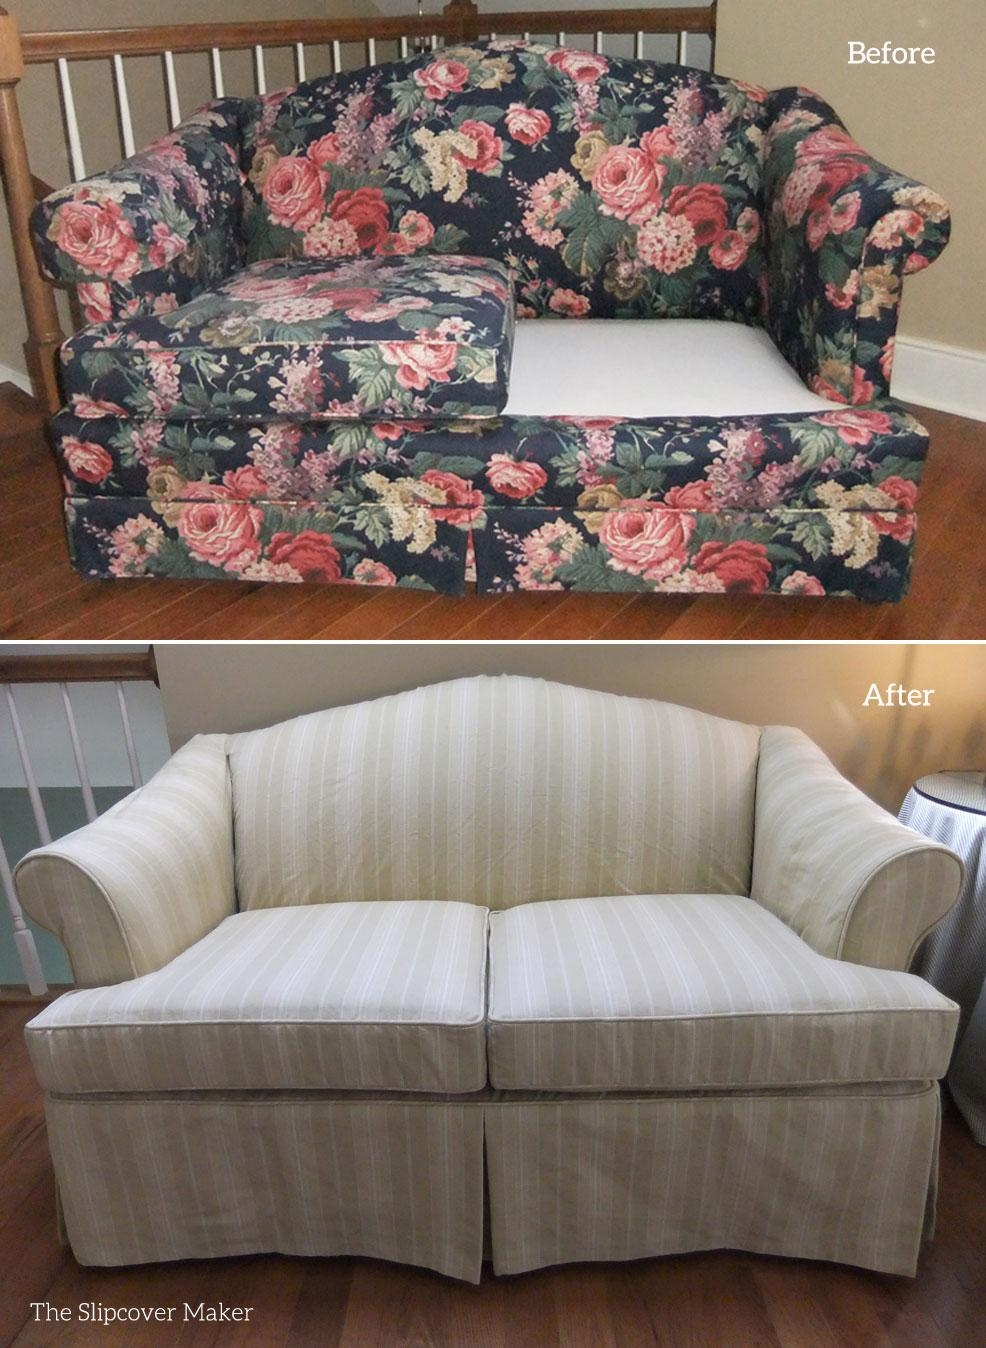 Slipcover Maker In Kalamazoo | The Slipcover Maker With Regard To Camel Back Couch Slipcovers (Image 15 of 20)